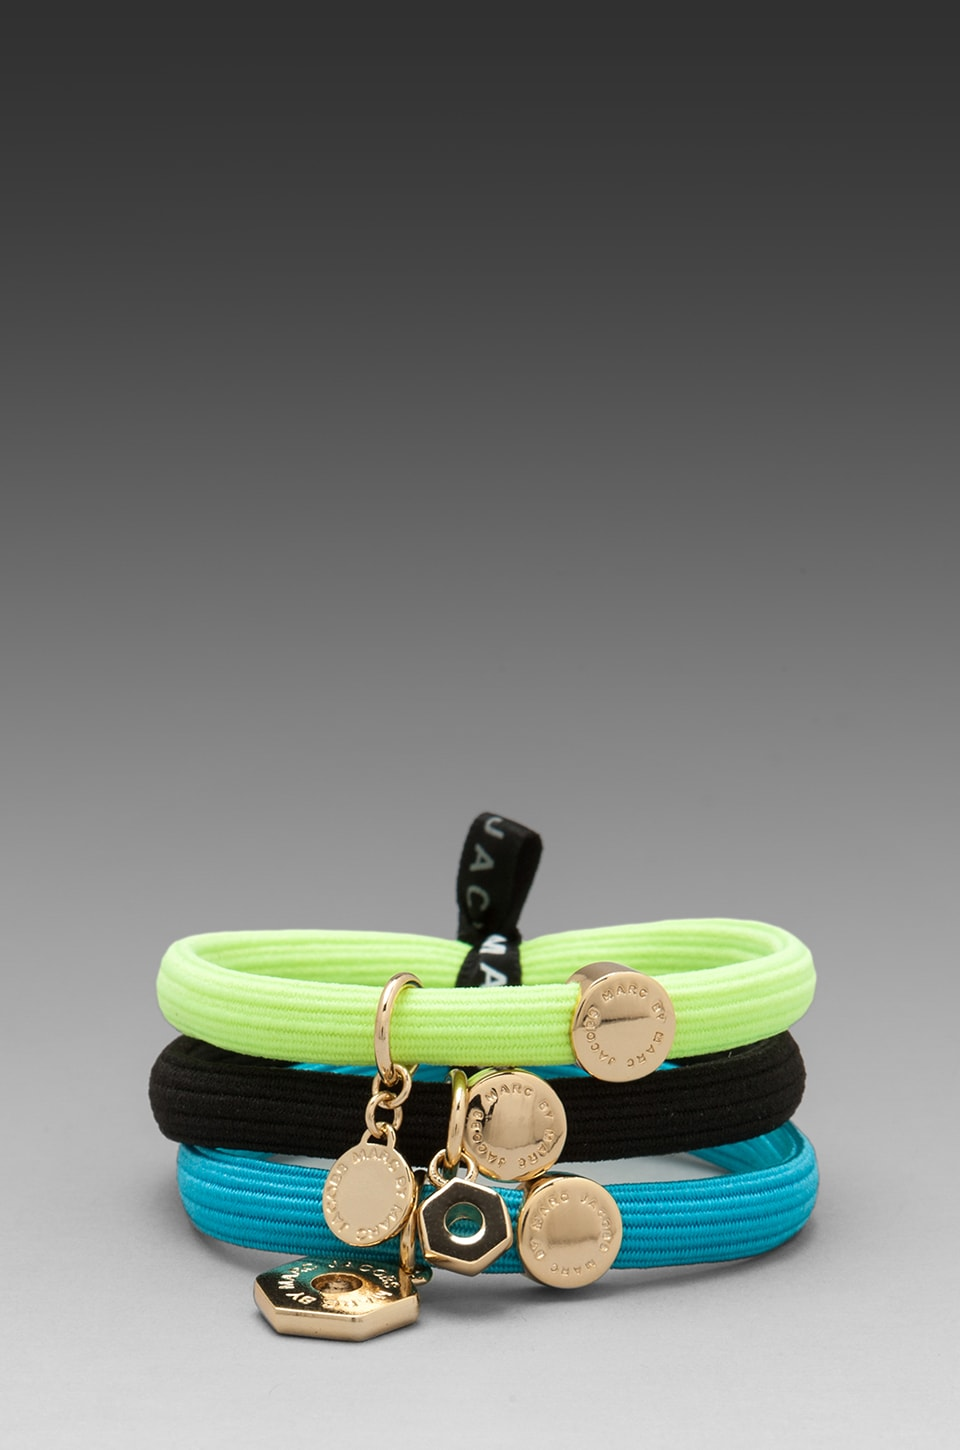 Marc by Marc Jacobs Cluster Ponys Bolts Hairbands in Oro